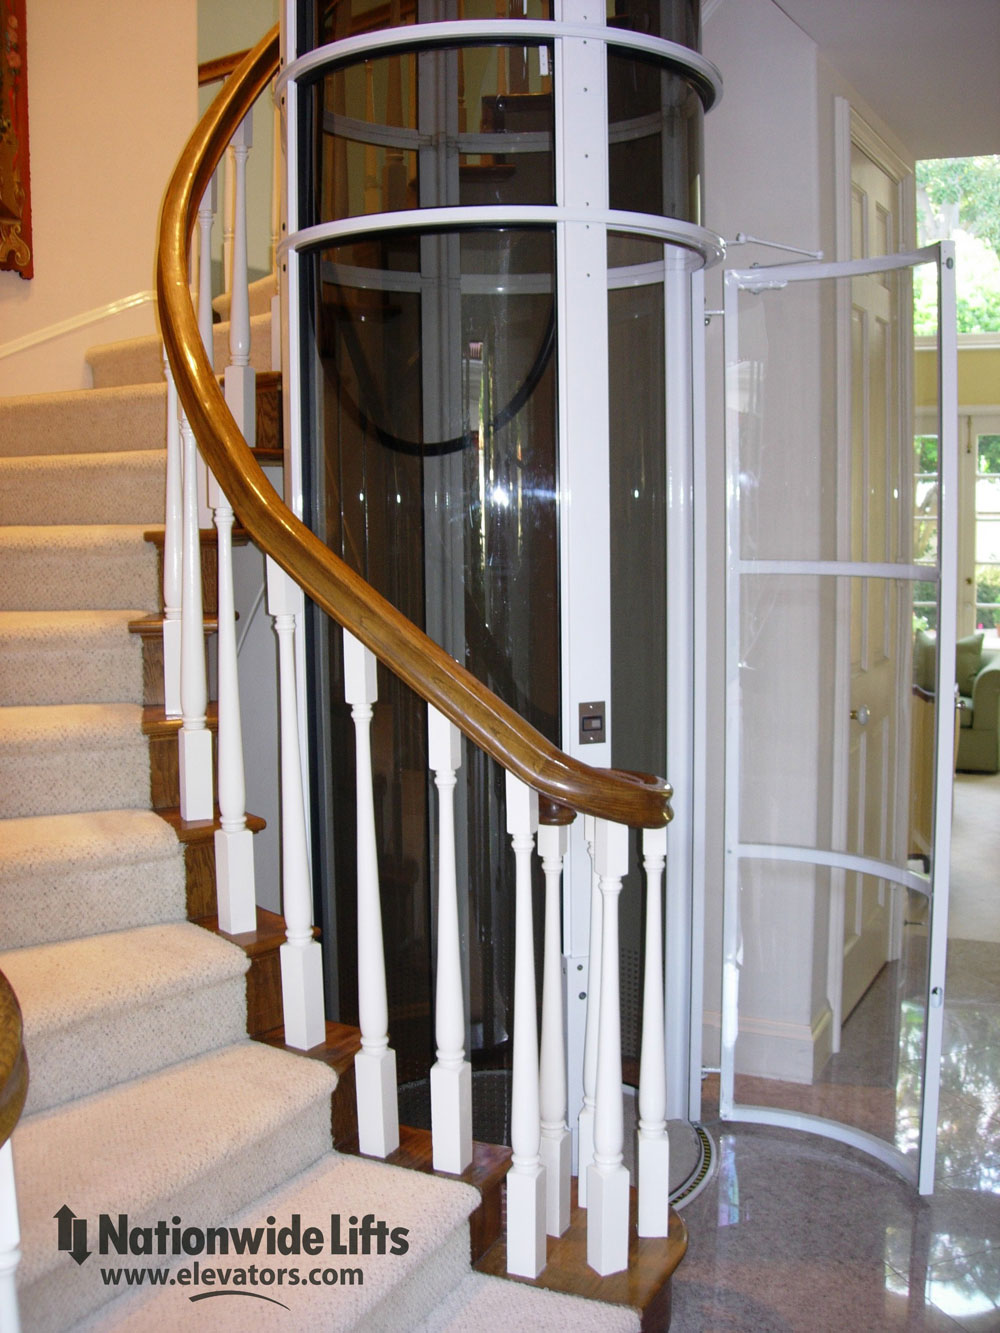 Home elevators prices - Pneumatic Elevator